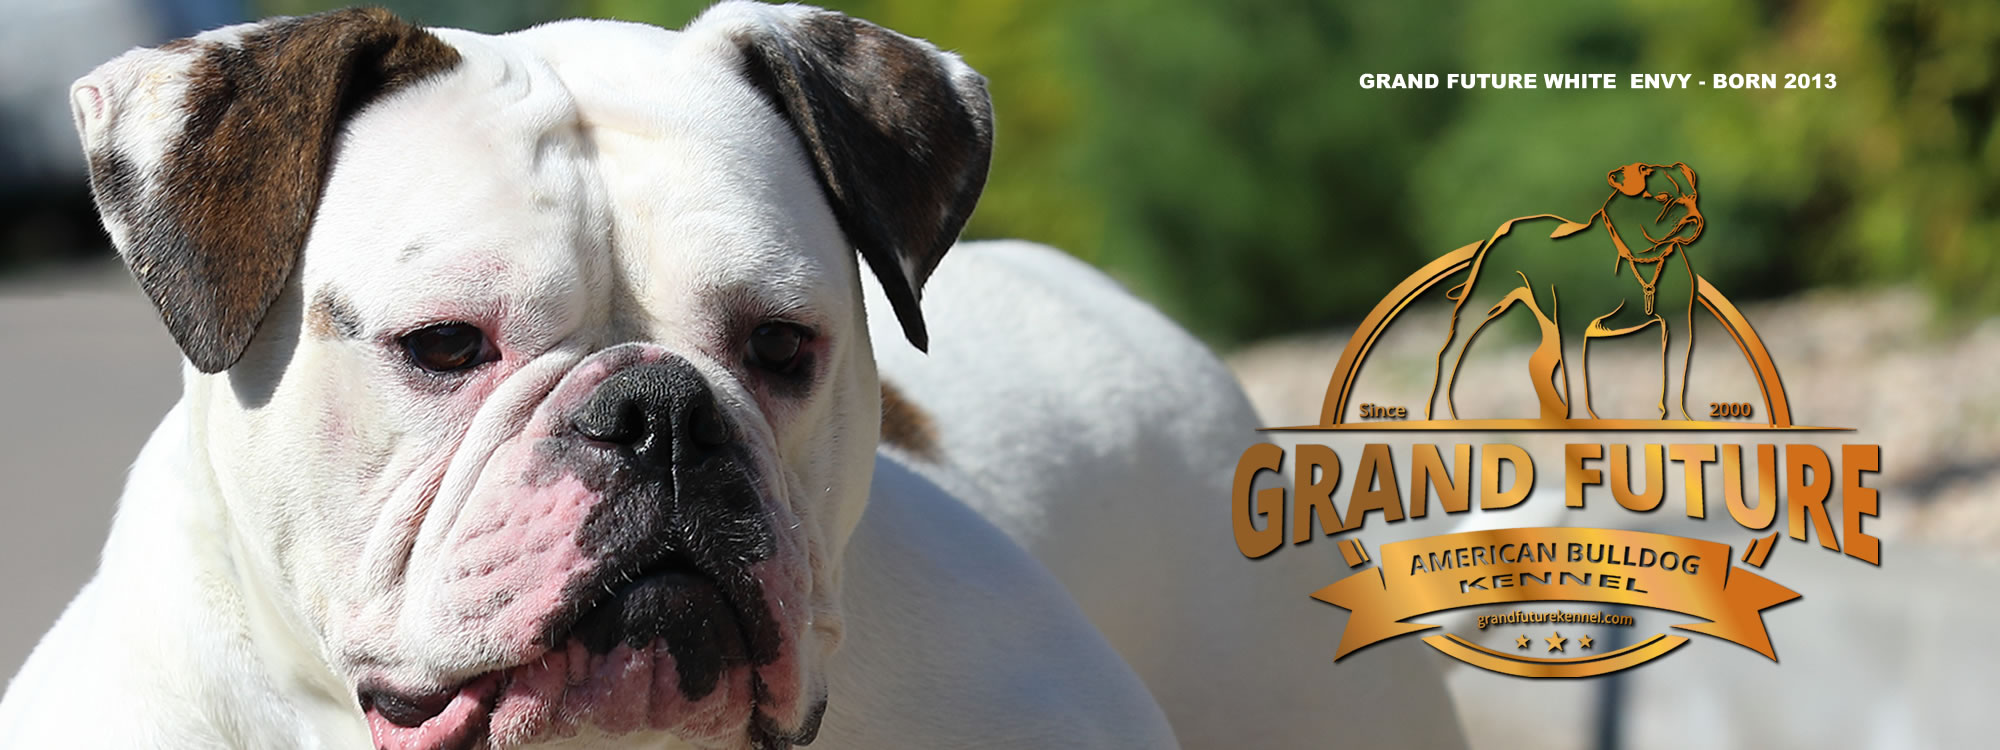 Champion Pedigree American Bulldog Puppies for Sale - GRAND FUTURE KENNEL - American Bulldog Kennel